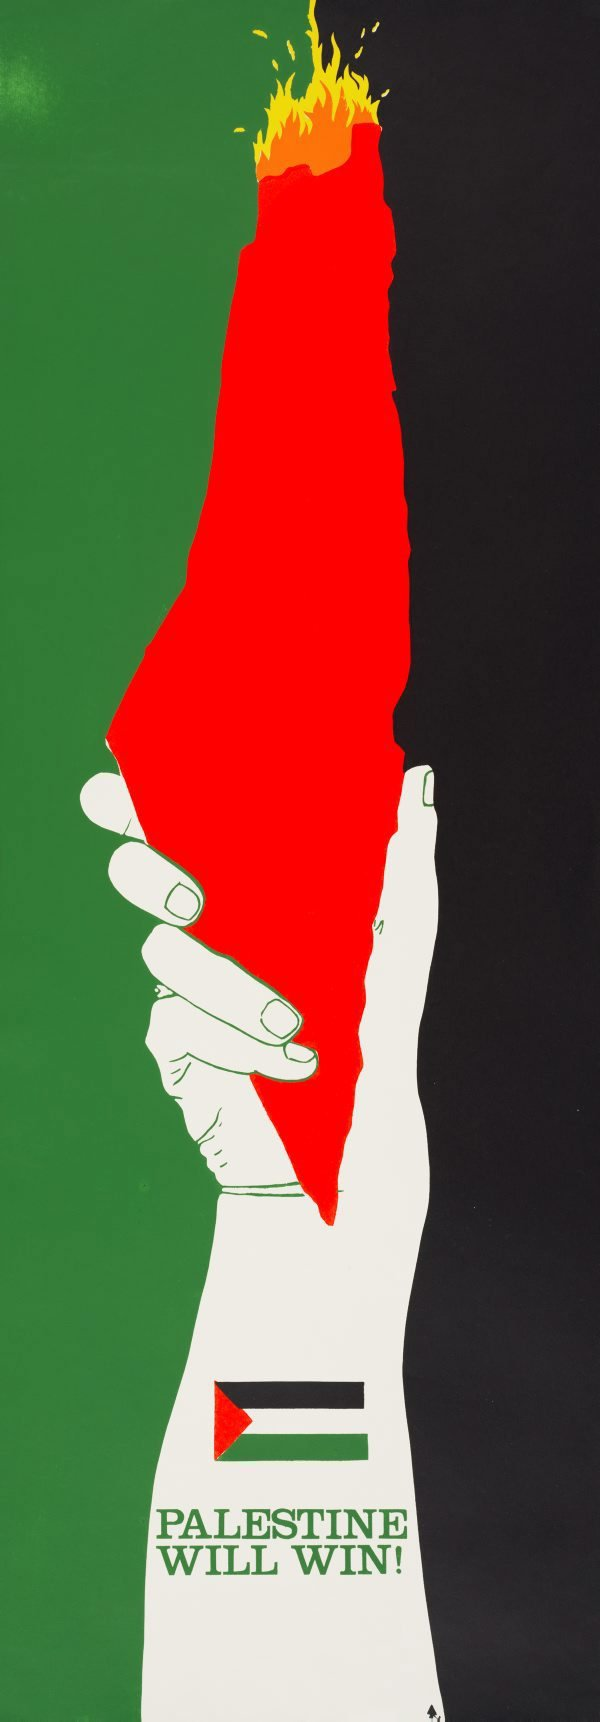 An image of Palestine will win